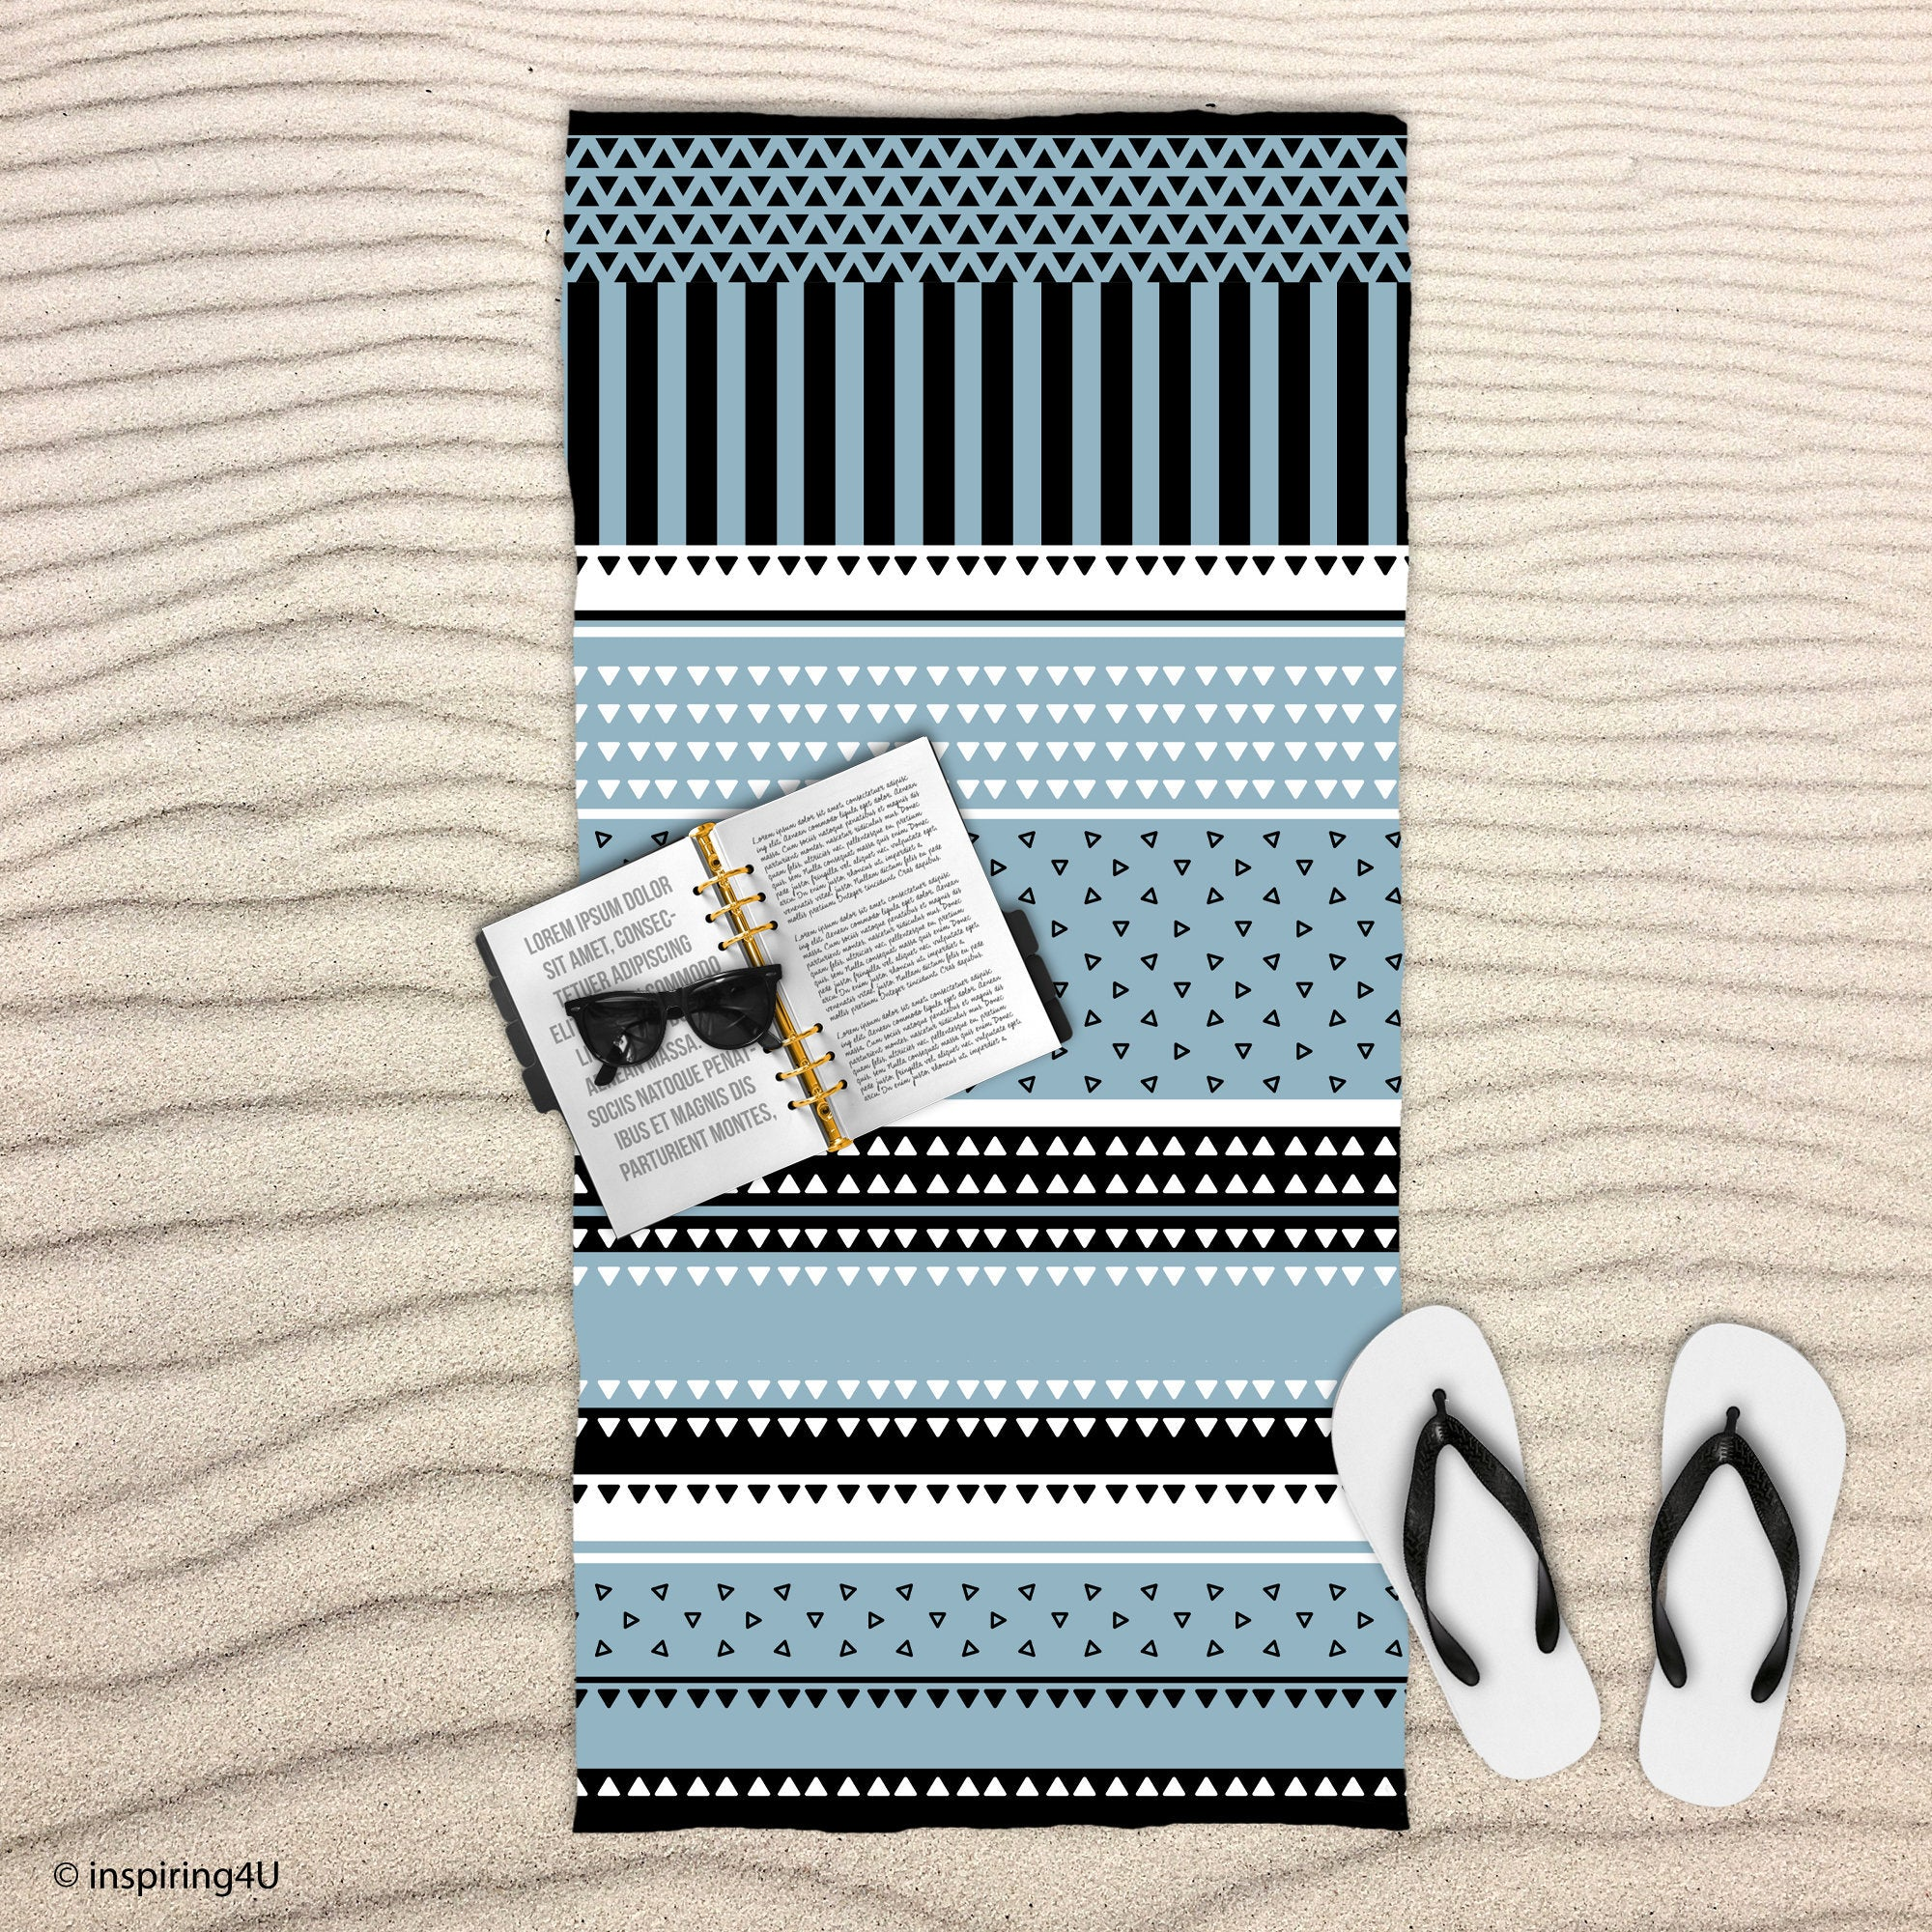 Grayish Blue Cotton Towel. Super Soft Sea Beach Towel. Black and White Texture Pool Towel. Gift for Her.